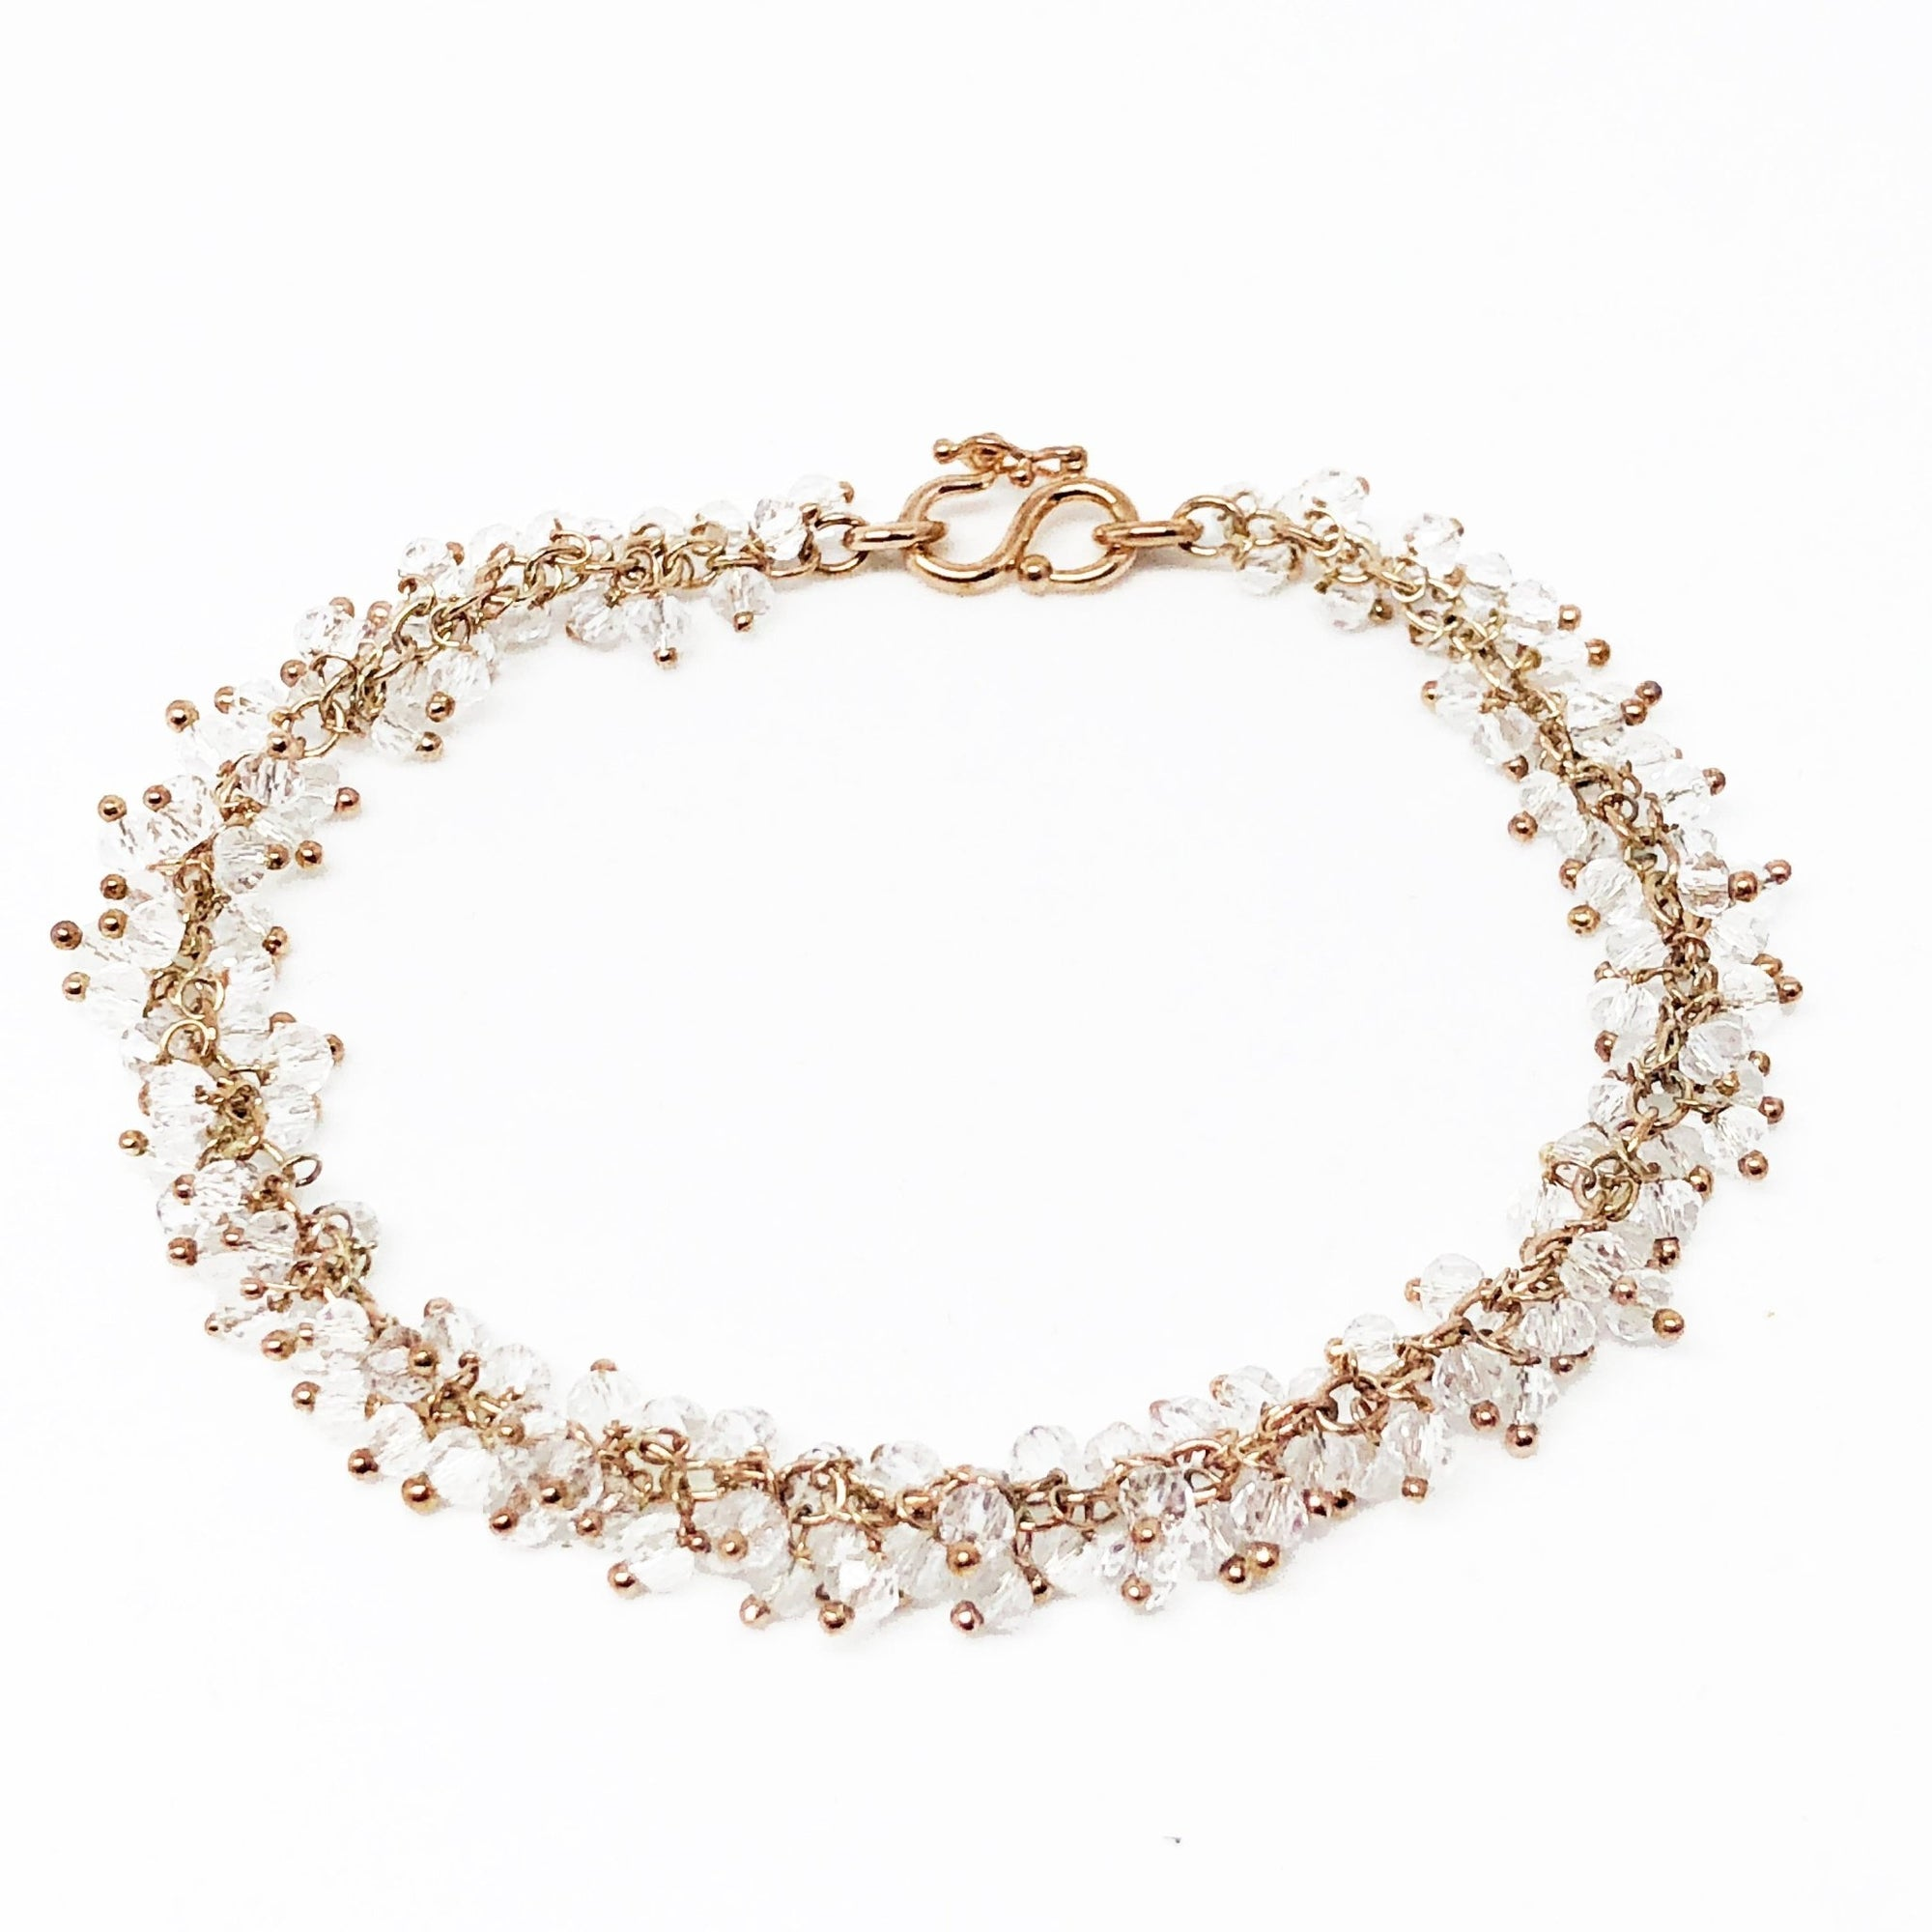 Clear Quartz Bracelet - Ashleigh Branstetter®